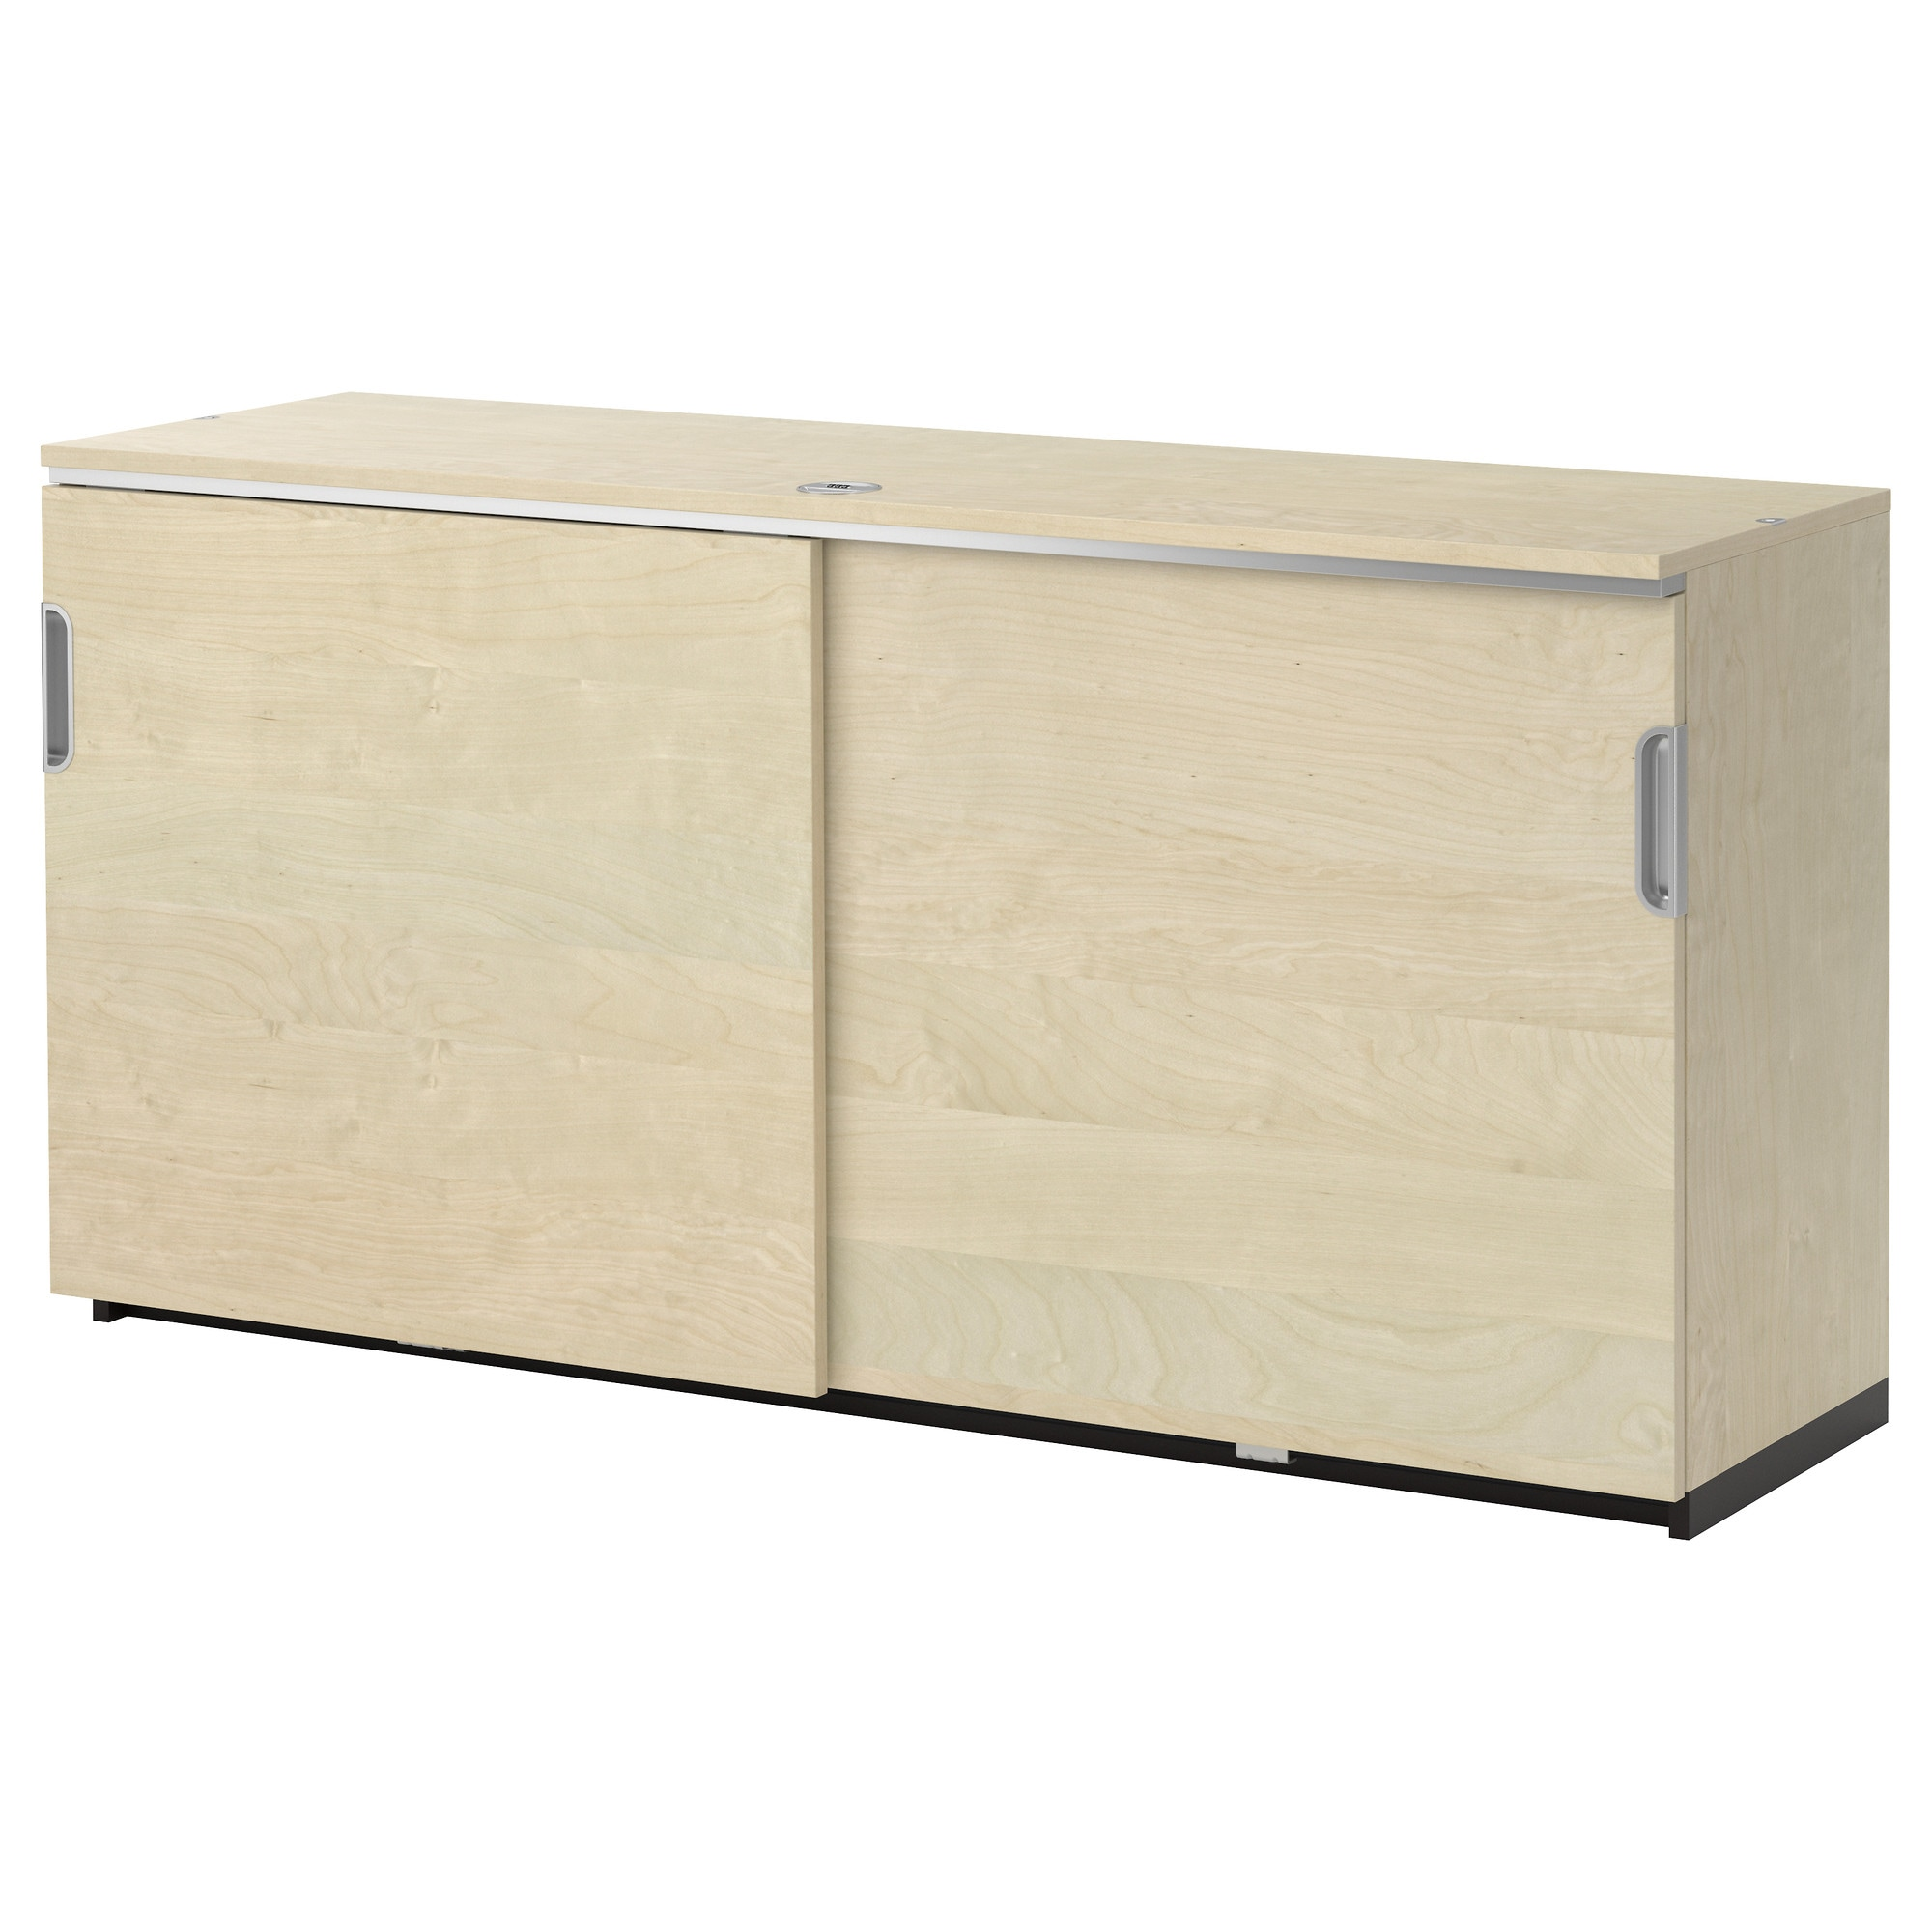 GALANT Cabinet With Sliding Doors   Birch Veneer   IKEA